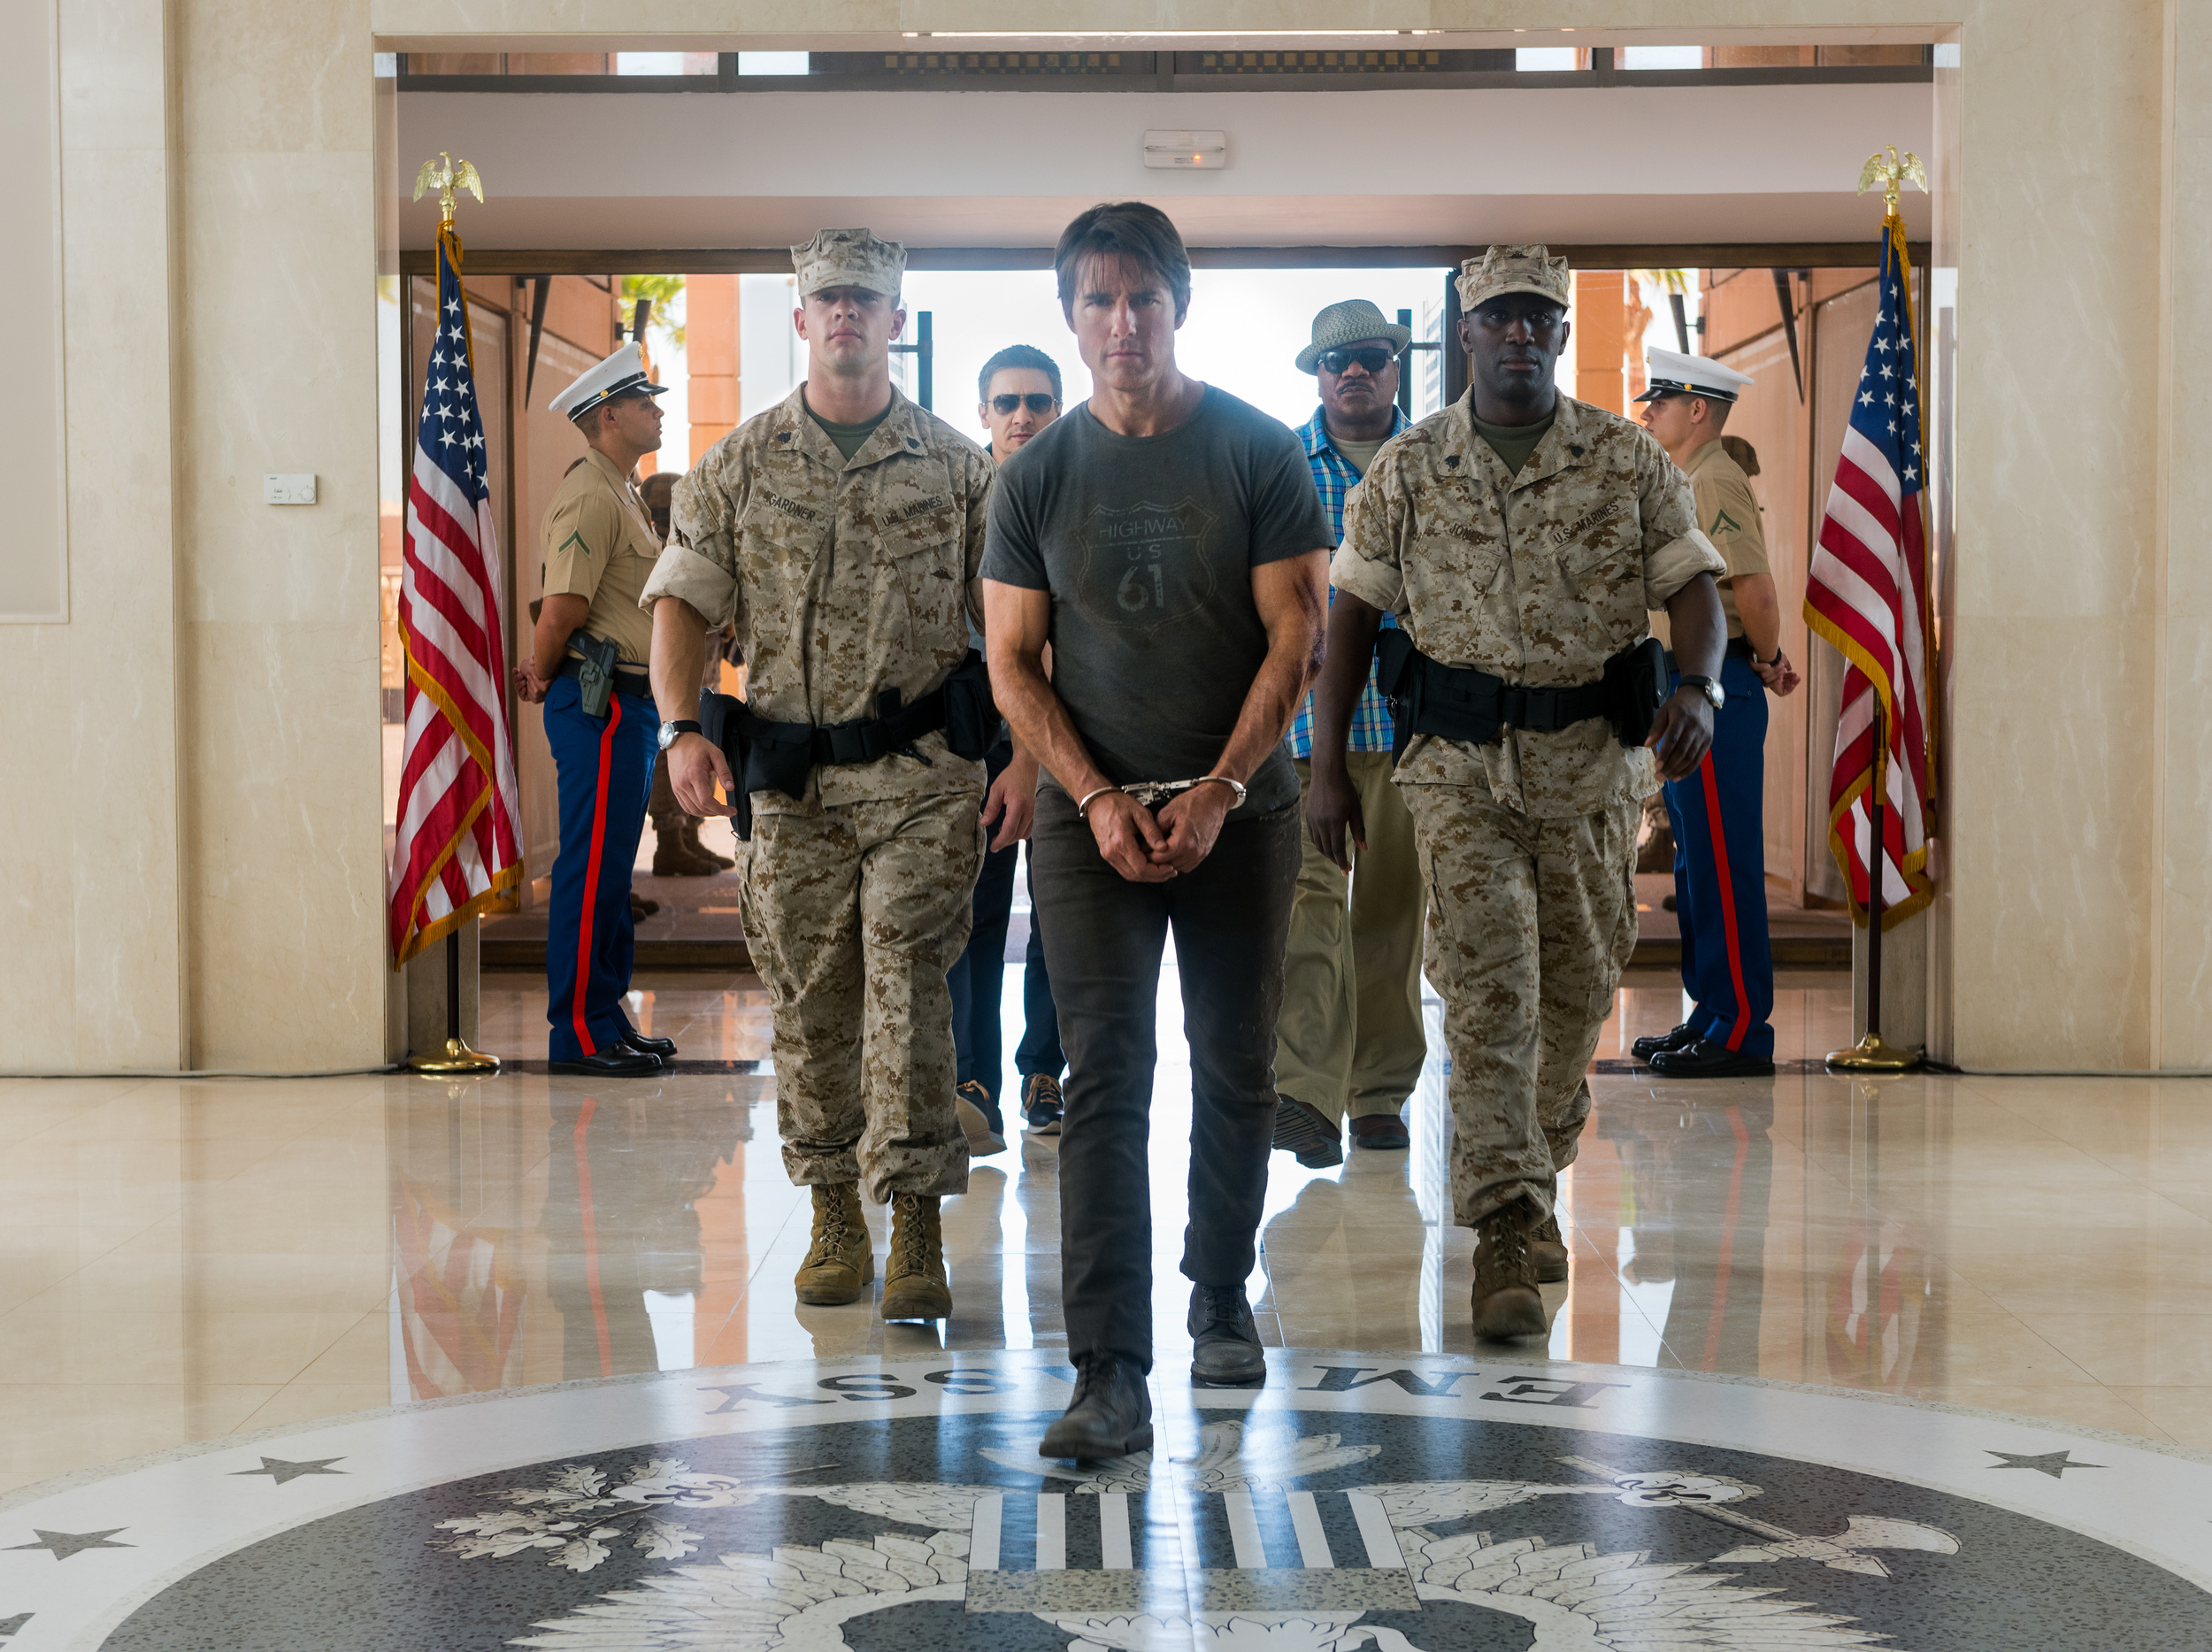 Jeremy Renner, Tom Cruise, and Ving Rhames in  Mission: Impossible — Rogue Nation.